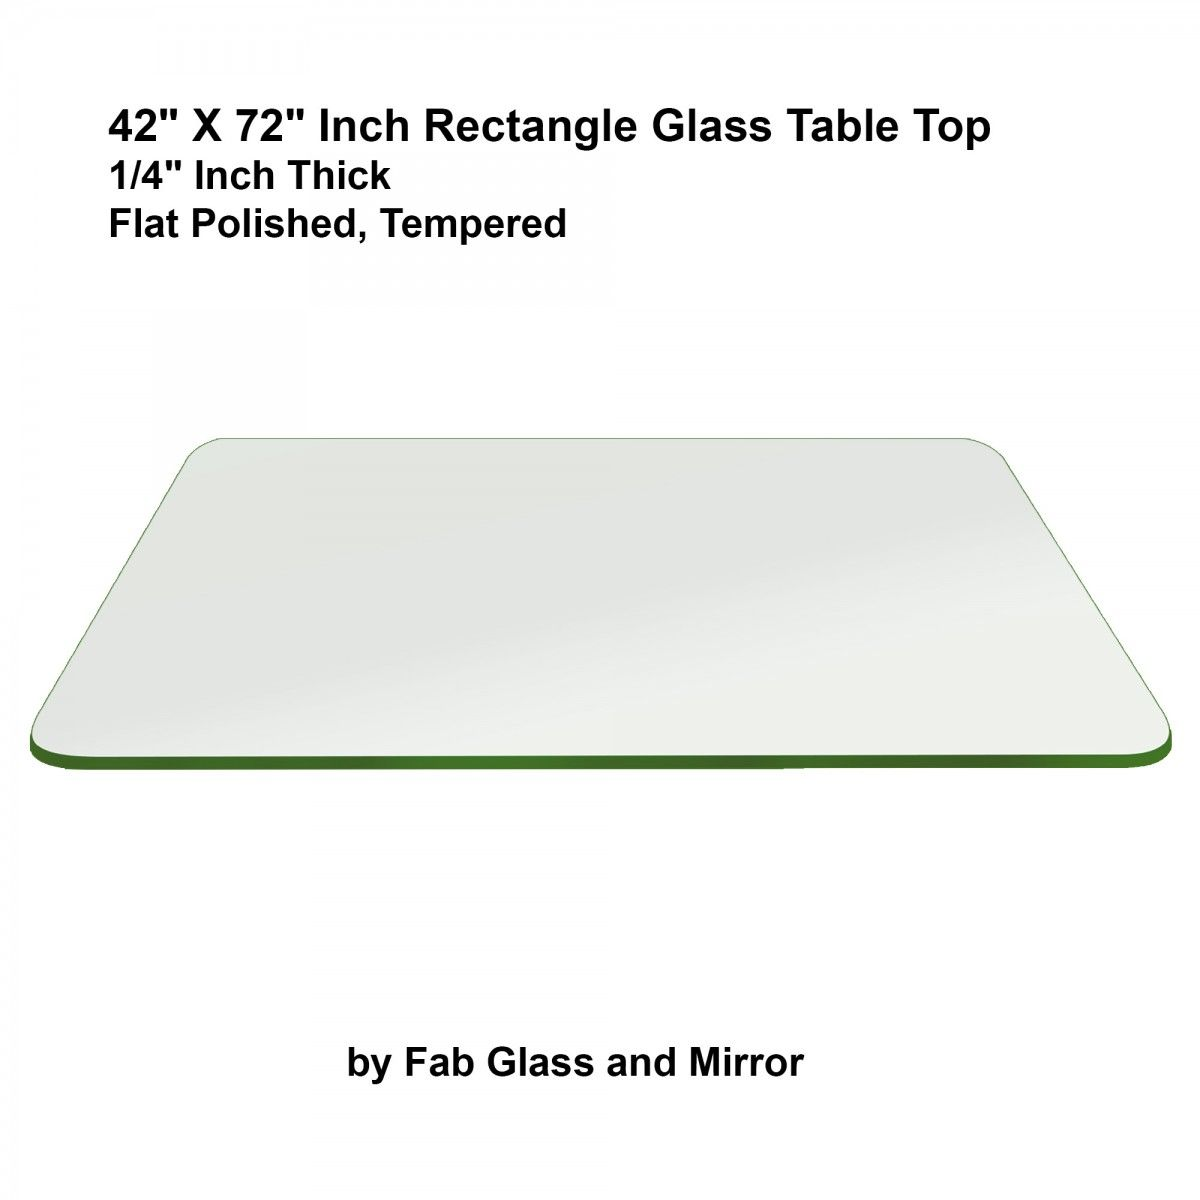 Rectangle Glass 42 X 72 Inch 1 4 Thick Flat Edge Tempered Eased Corner Glass Top Table Glass Table Tempered Glass Table Top